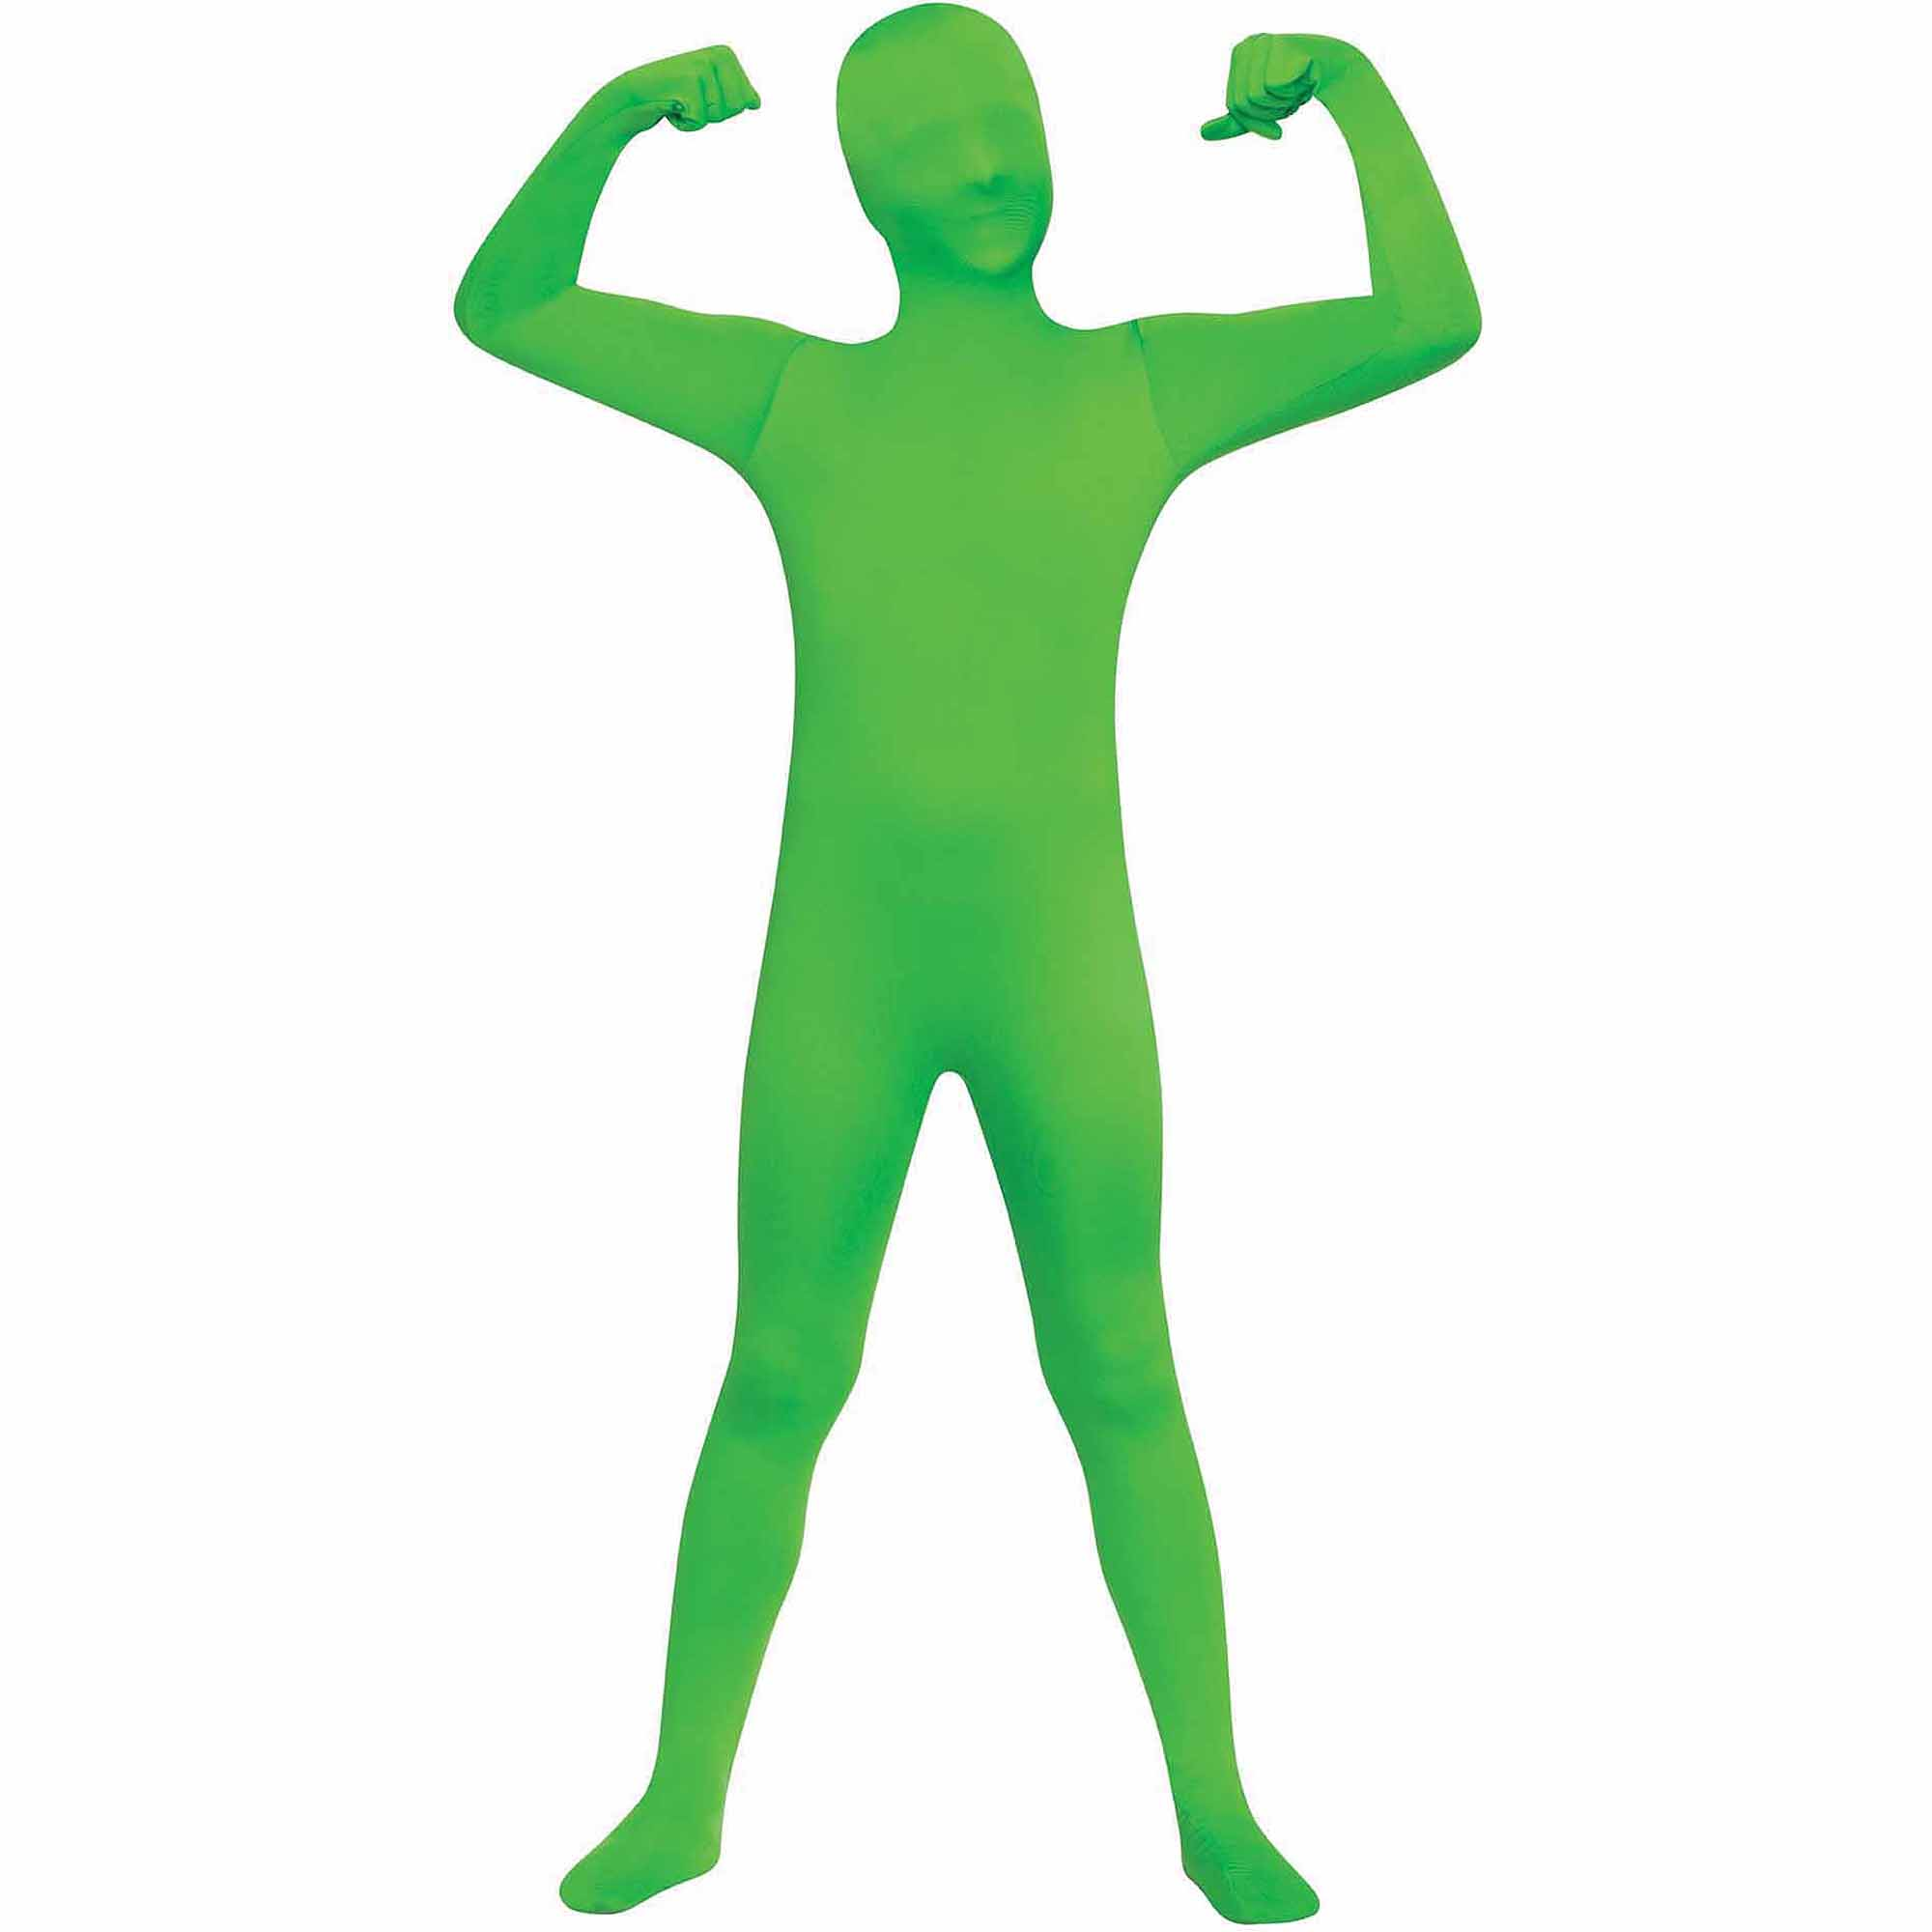 Green Skin Suit Child Halloween Costume - Walmart.com